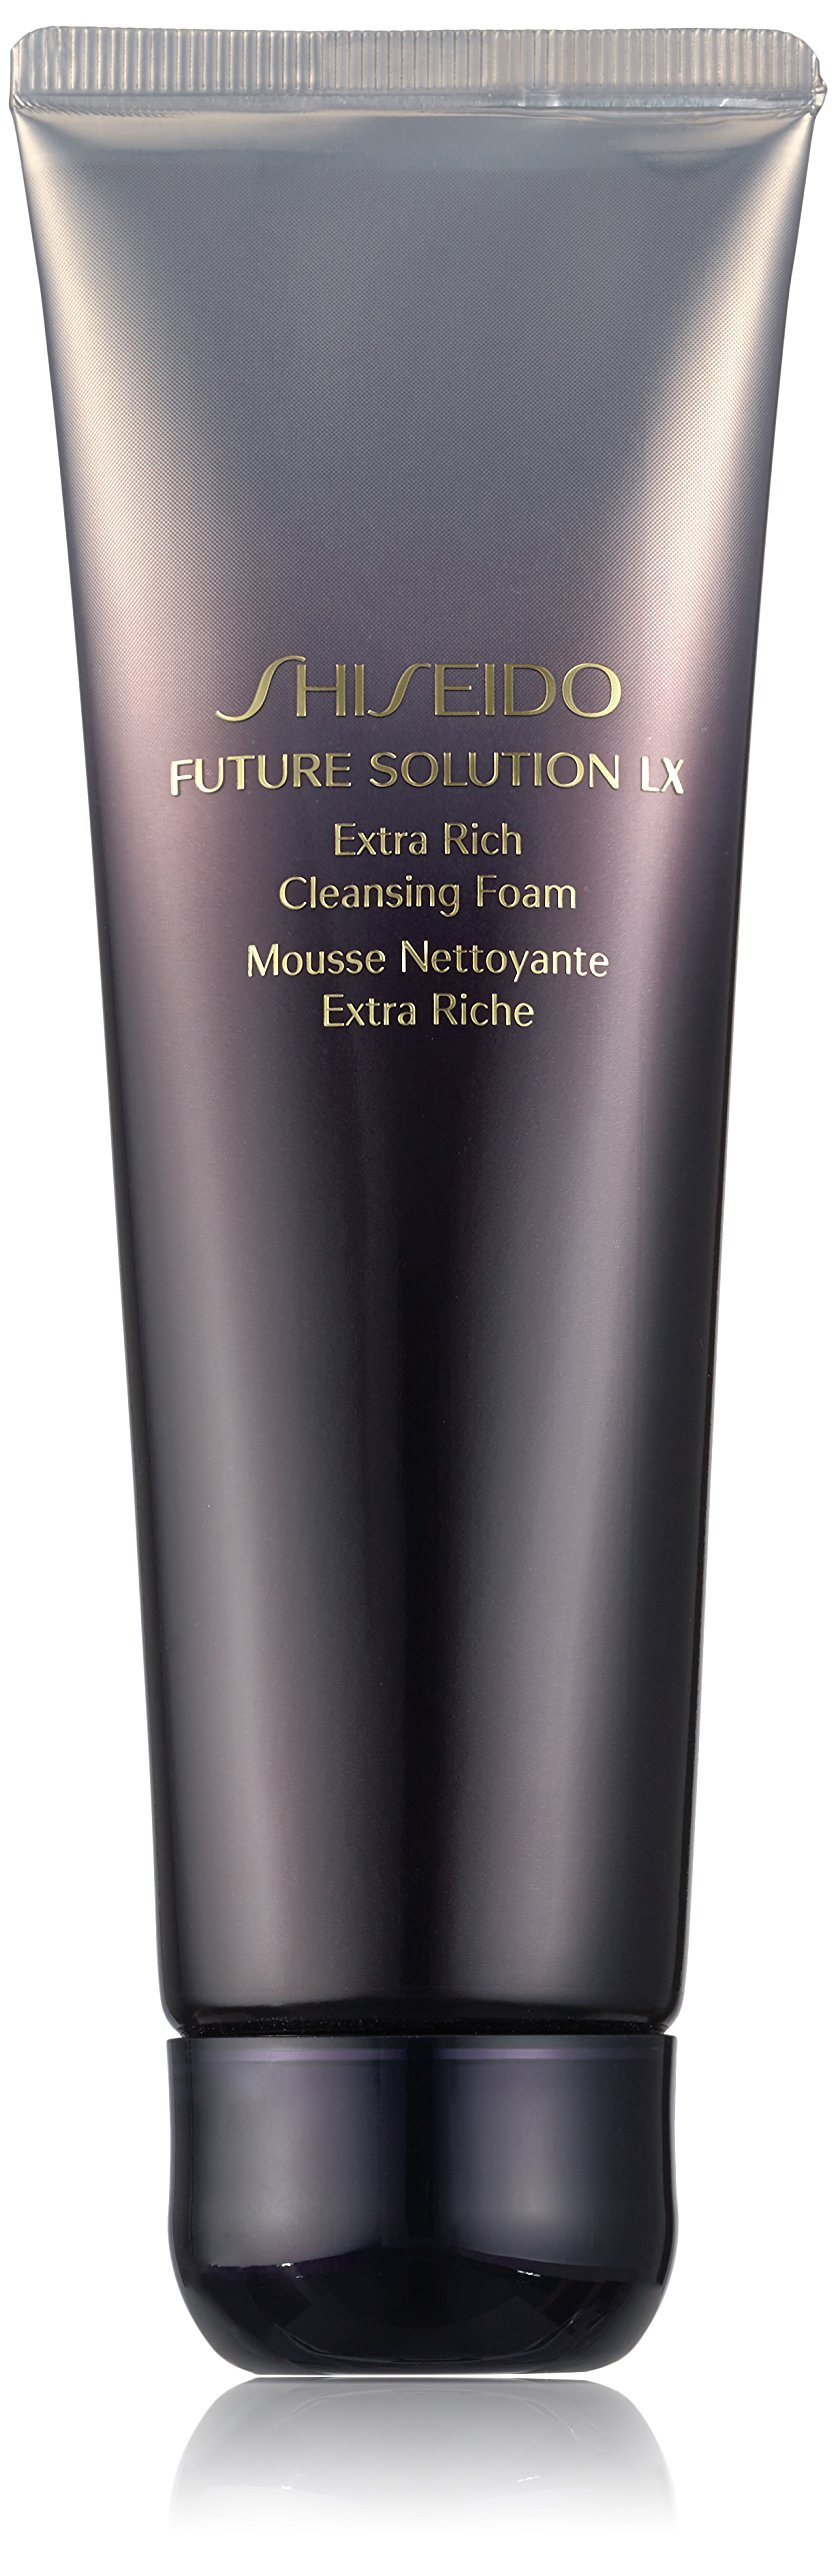 Shiseido Future Solution Lx Extra Rich Cleansing Foam for Unisex, 4.7 Ounce by Shiseido